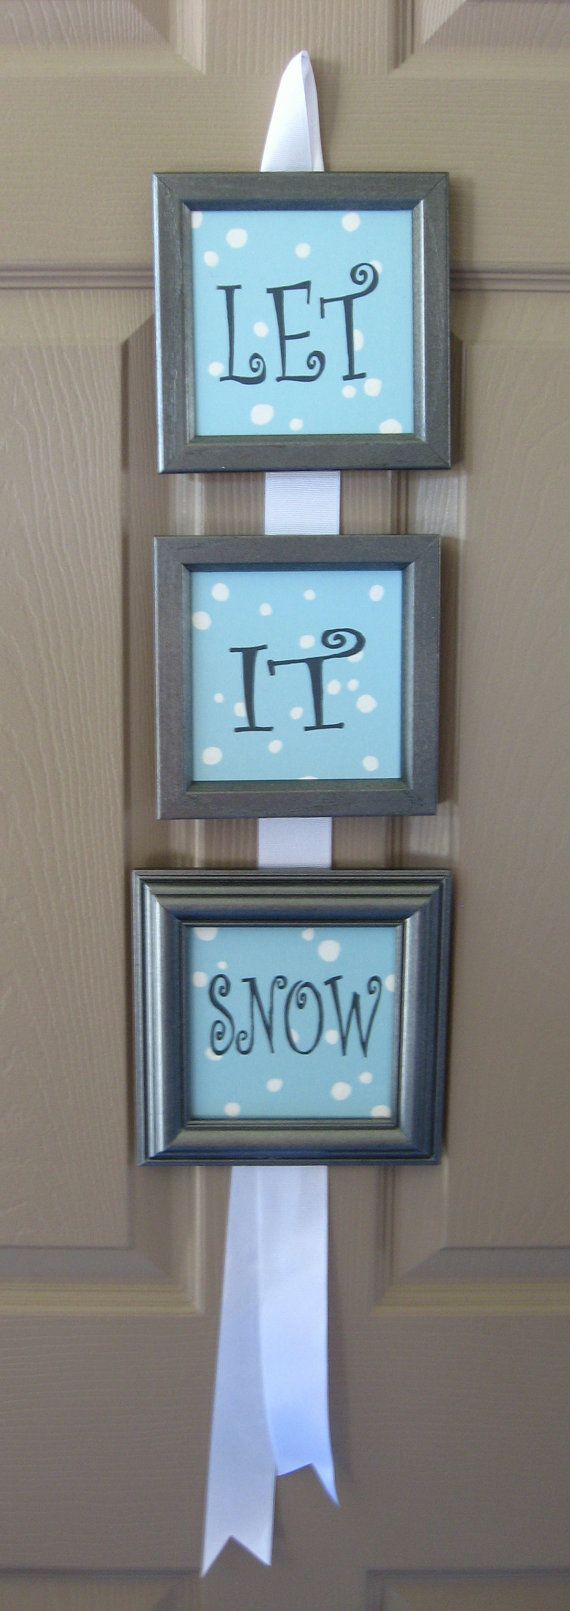 Let it snow - Could probably get materials from dollar store? Cricut ...